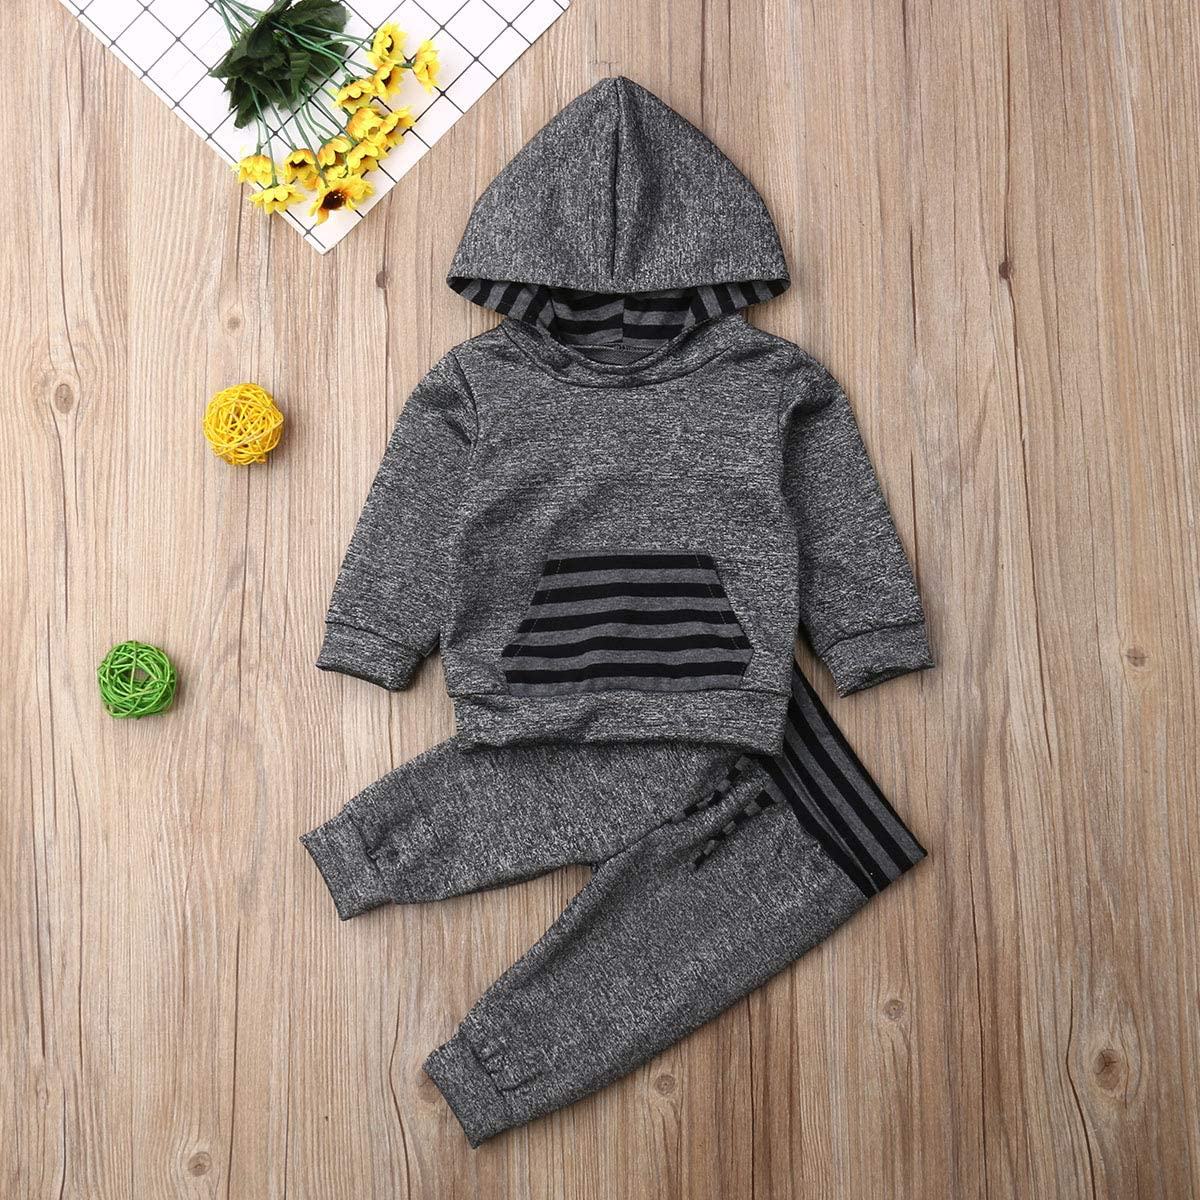 Toddler 2PCS Kids Baby Boys Sweatshirt Top+Pants Clothes Cute Jumper Outfits Set